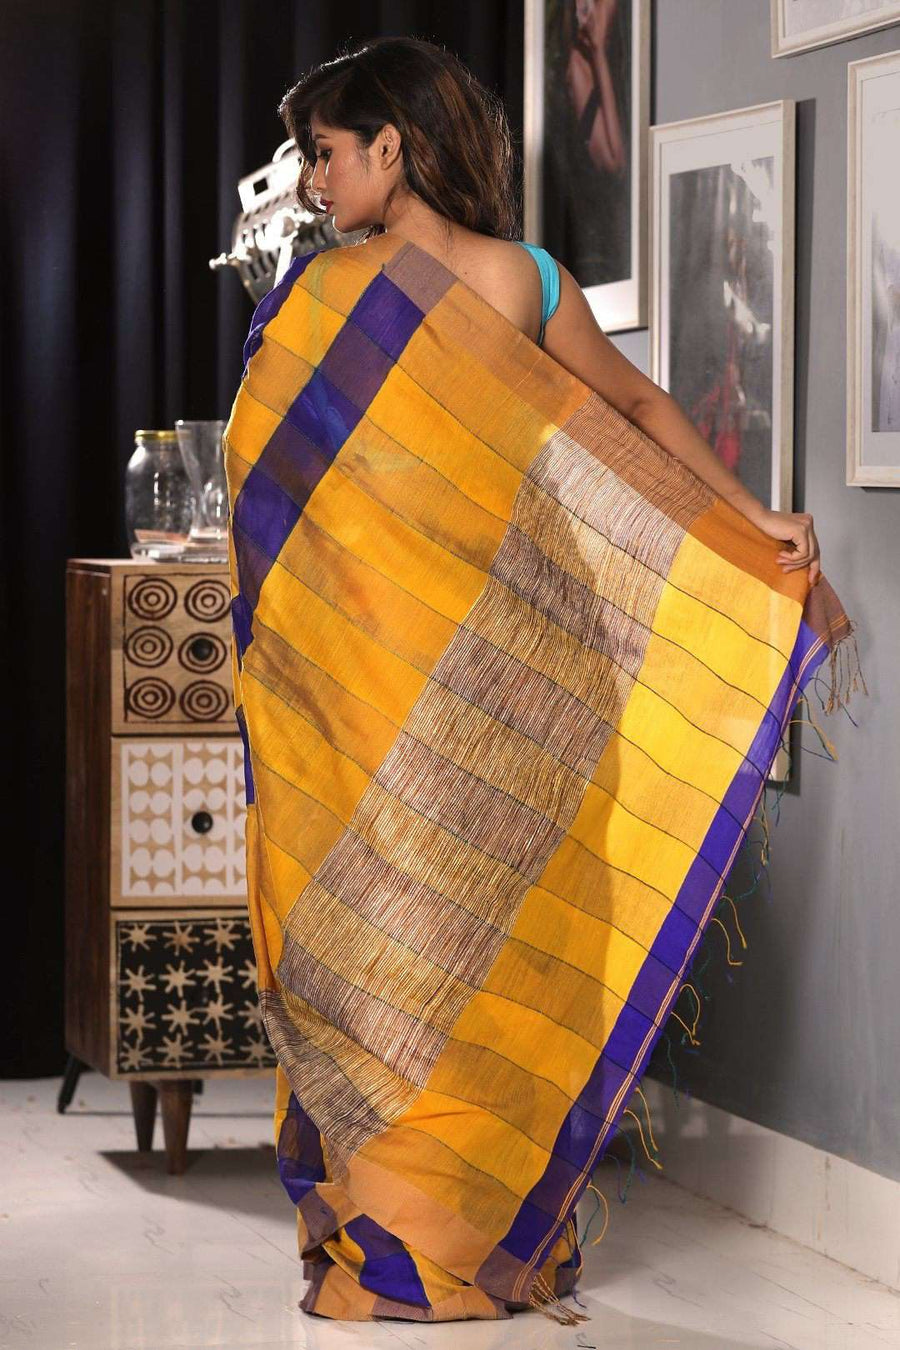 Honey & Indigo Textured Blended Cotton Saree Akasha Roopkatha - A Story of Art